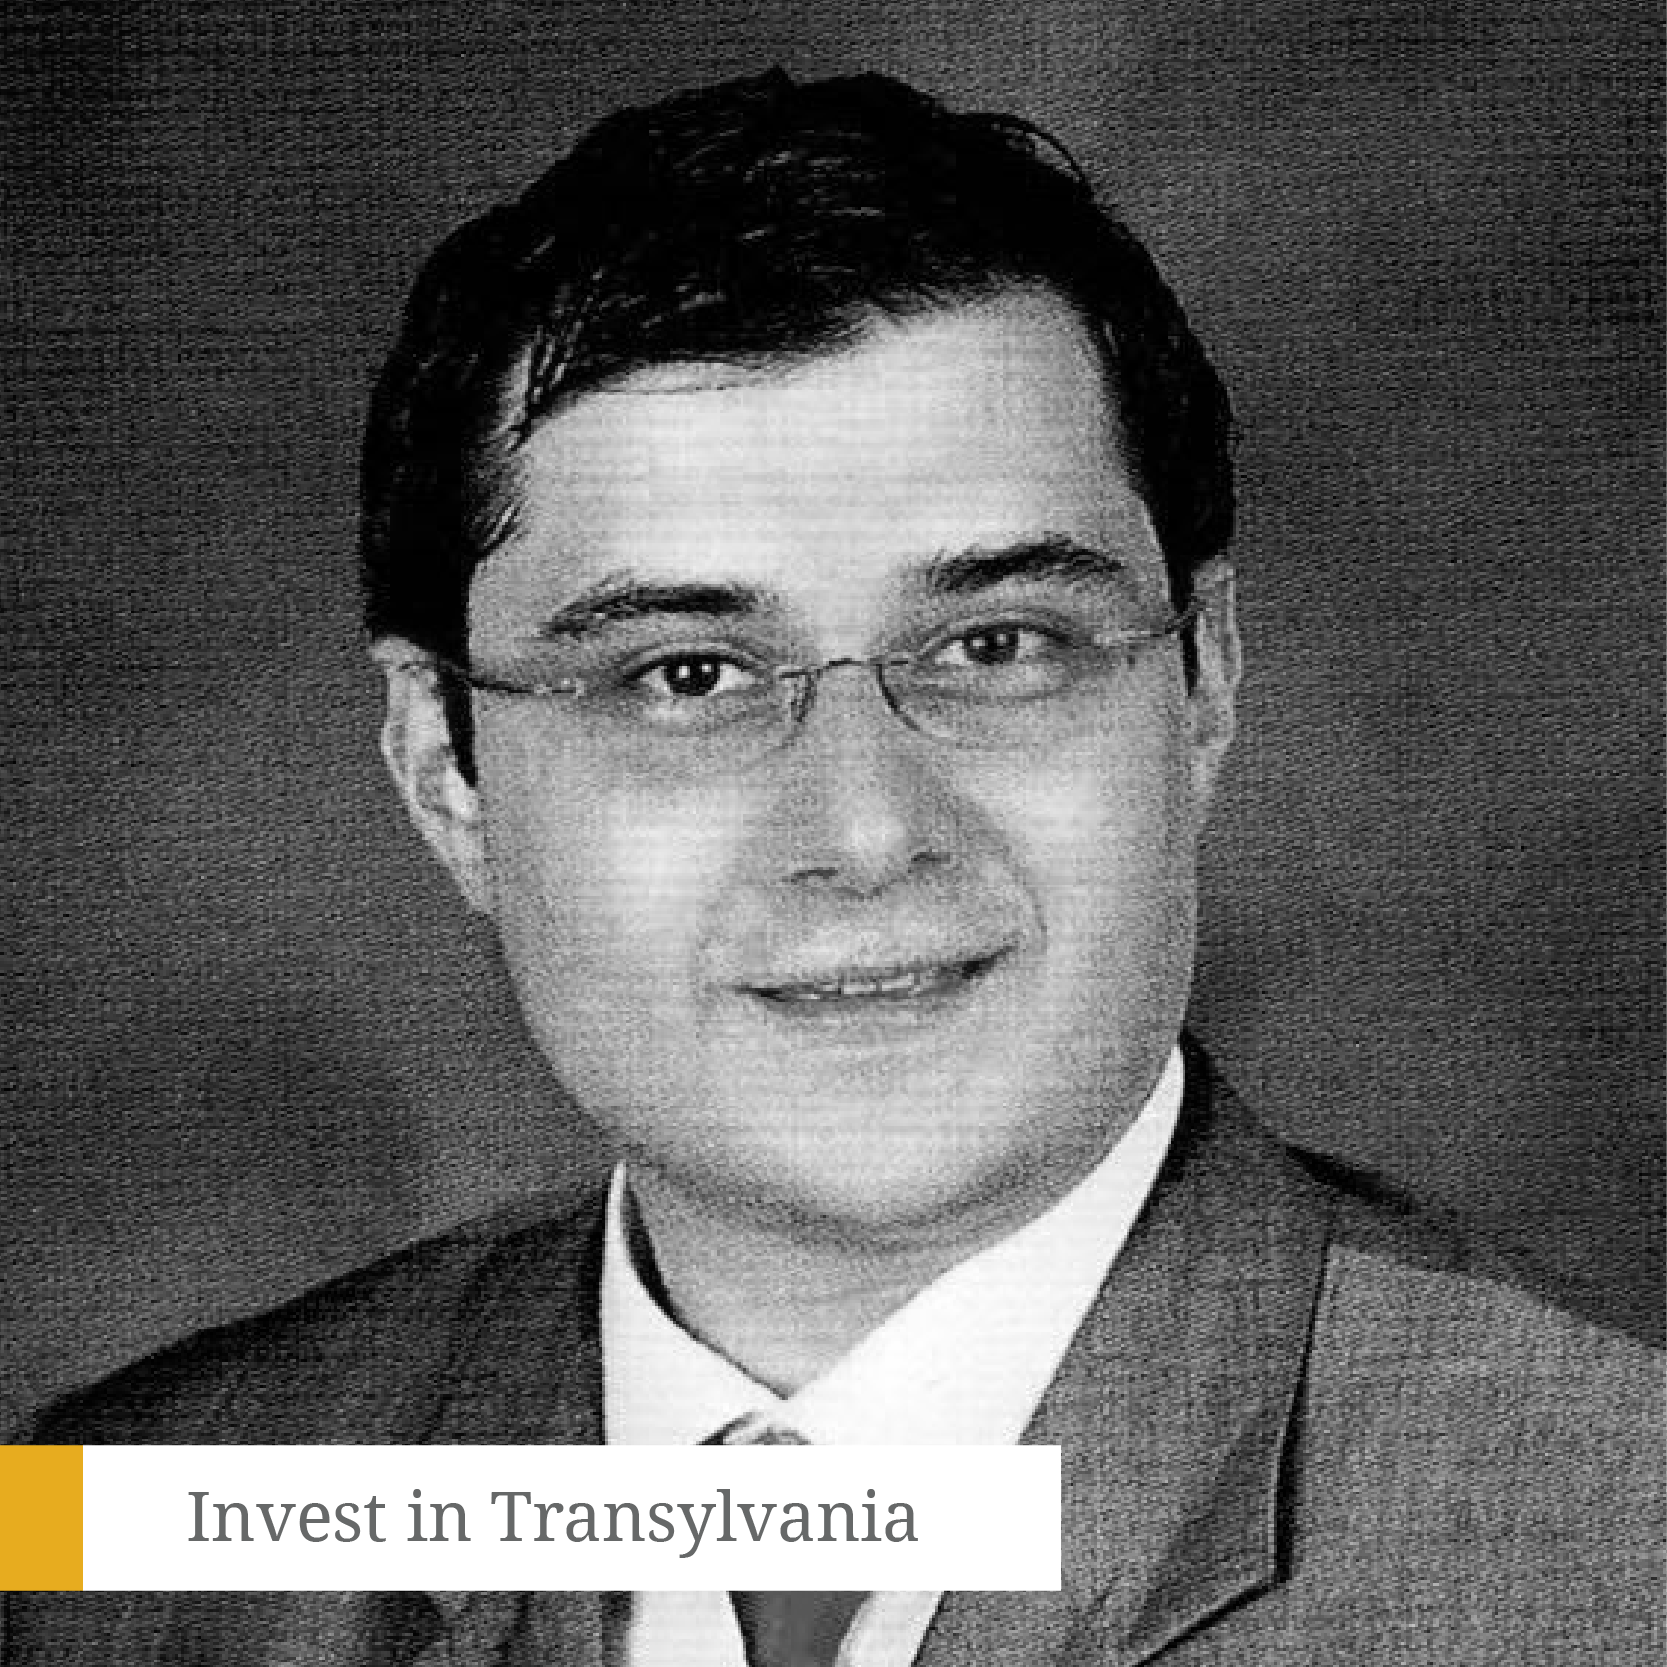 """Alexandru Savoiu - Investor & Entrepreneur in Artificial Intelligence,Stanford UniversityExperienced professional in the financial domain and fintech entrepreneur, Alexandru is working on his start-up while simultaneously doing a full-time specialisation in AI at Stanford University. """"As an investor I have gained a perspective and a set of unique skills from working as a macro trader, fundamental investor, and quant investor at some of the biggest banks and investments funds (Morgan Stanley, Royal Bank of Scotland, Vy Capital, NCH Capital, Deutsche Bank Quant Asset Management)."""